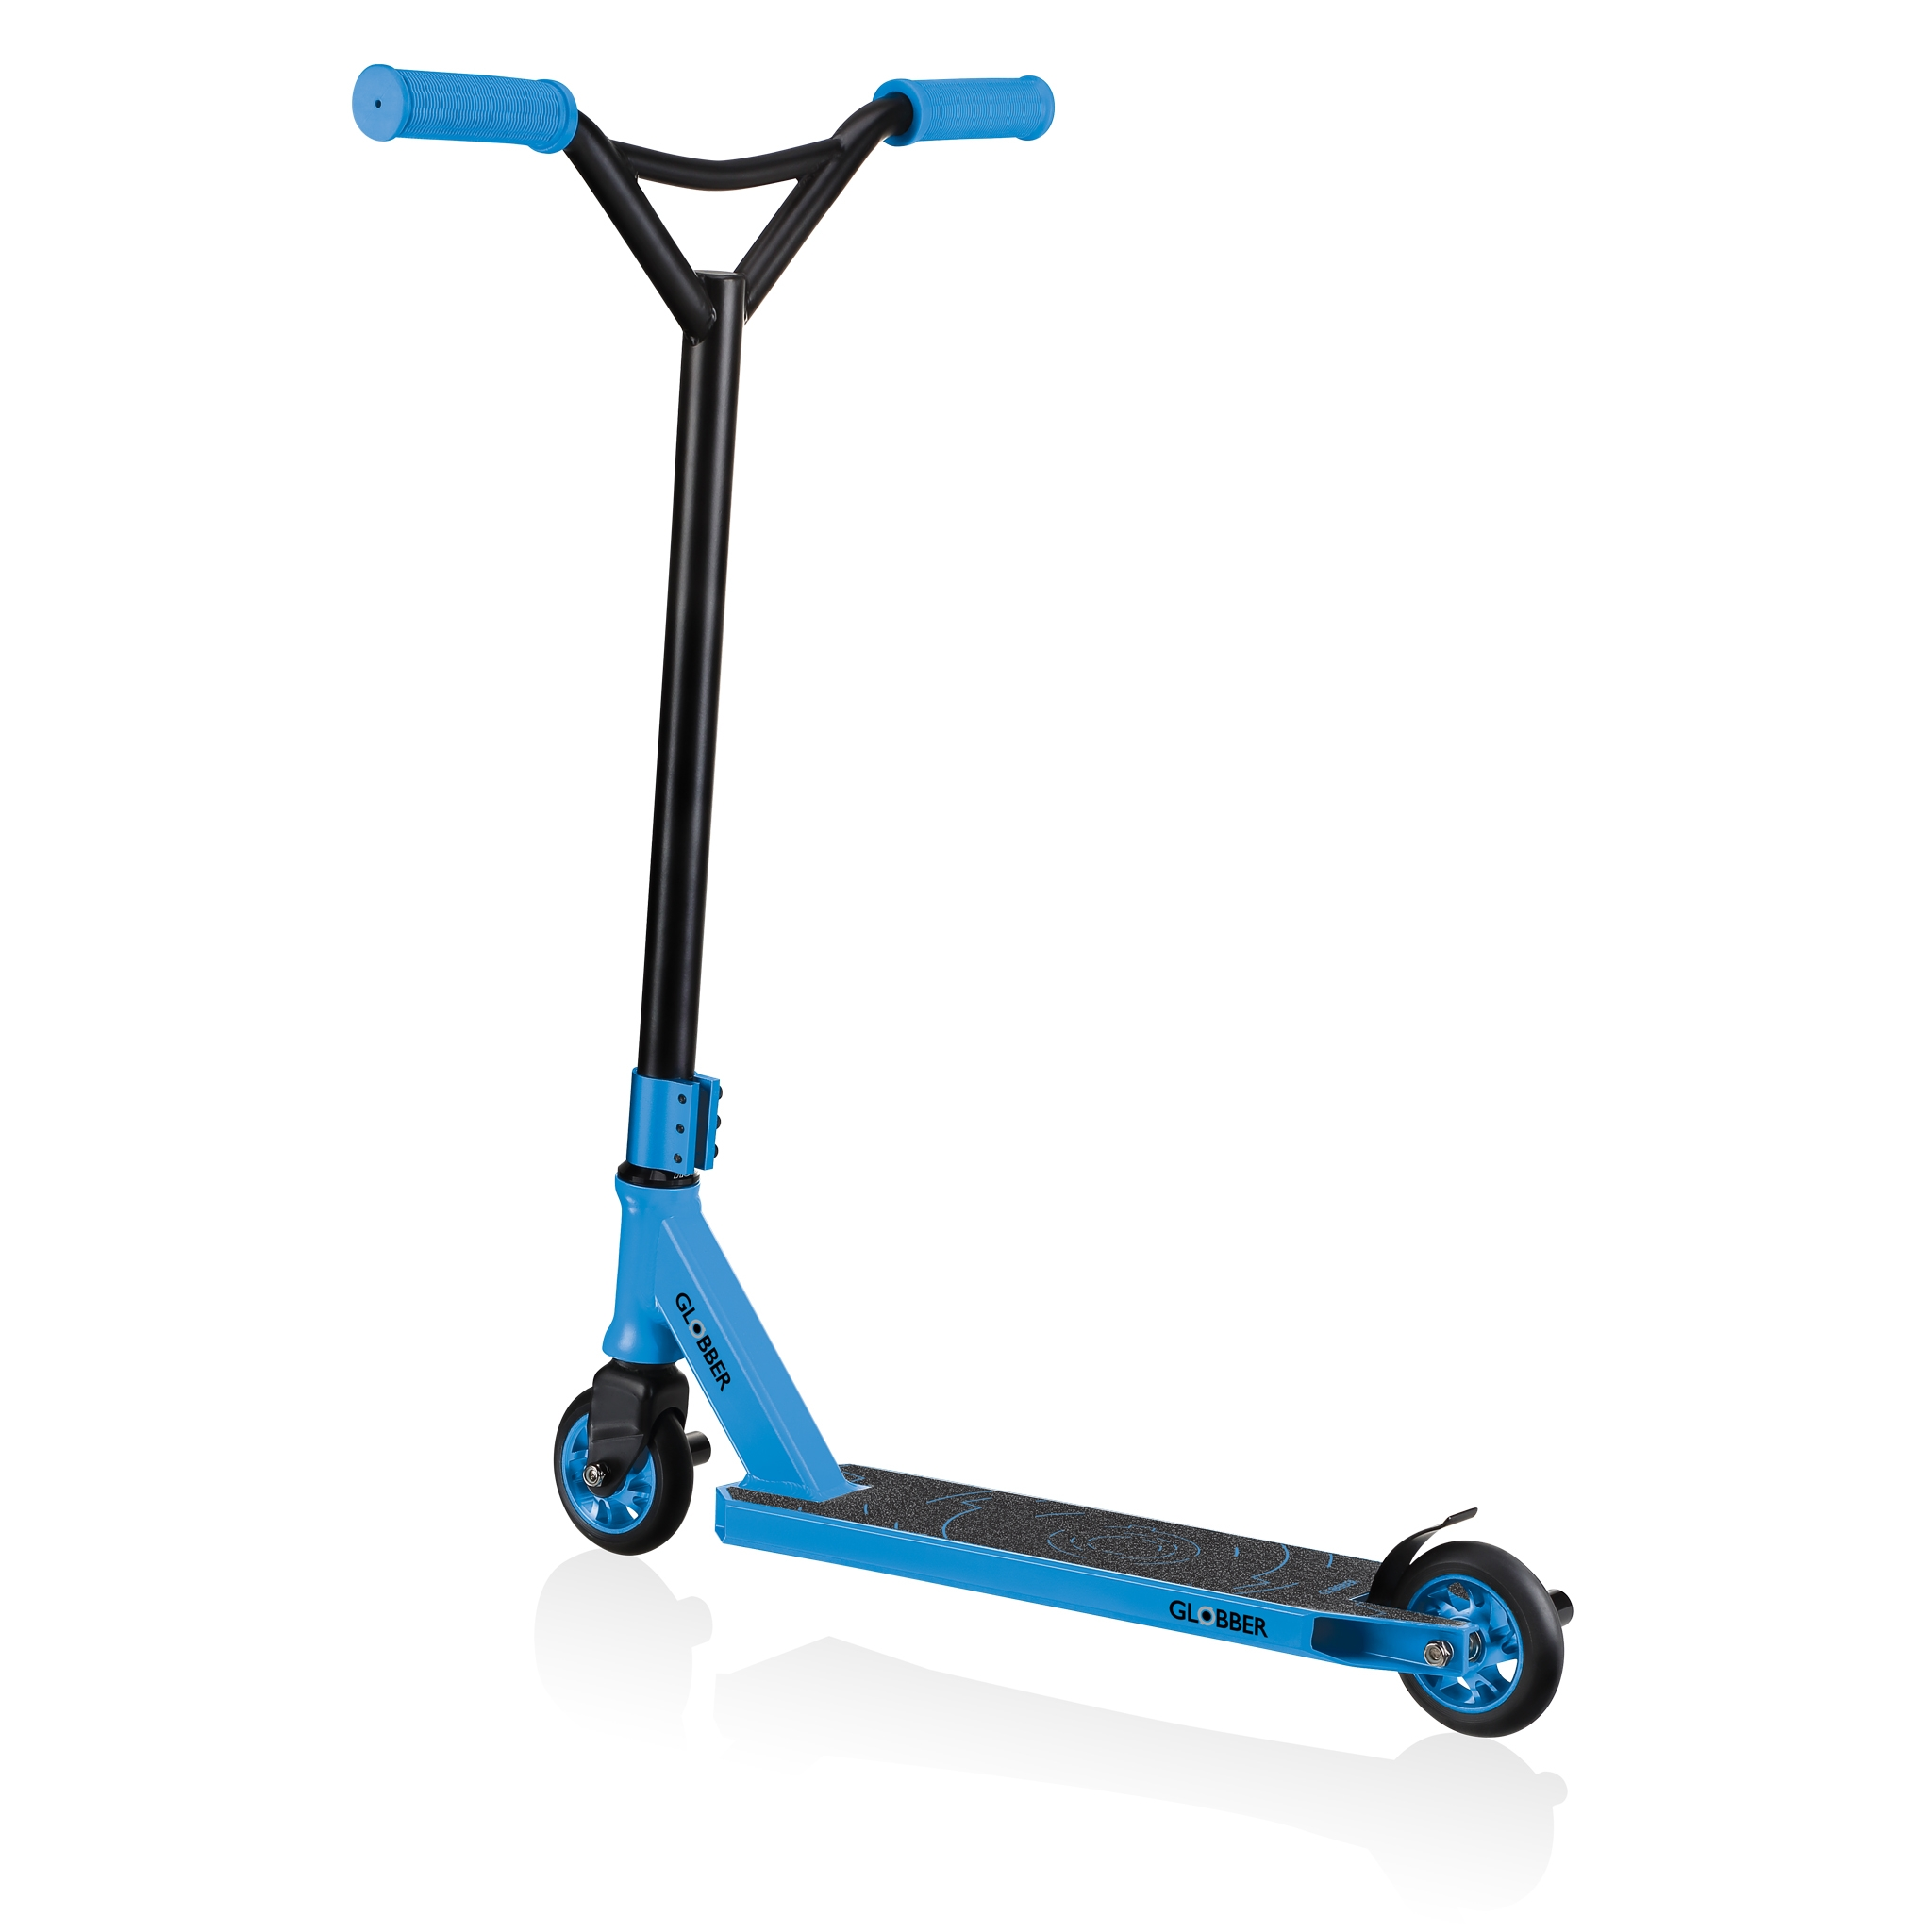 stunt scooter for kids and teens aged 8+ with pegs - Globber GS 540 2